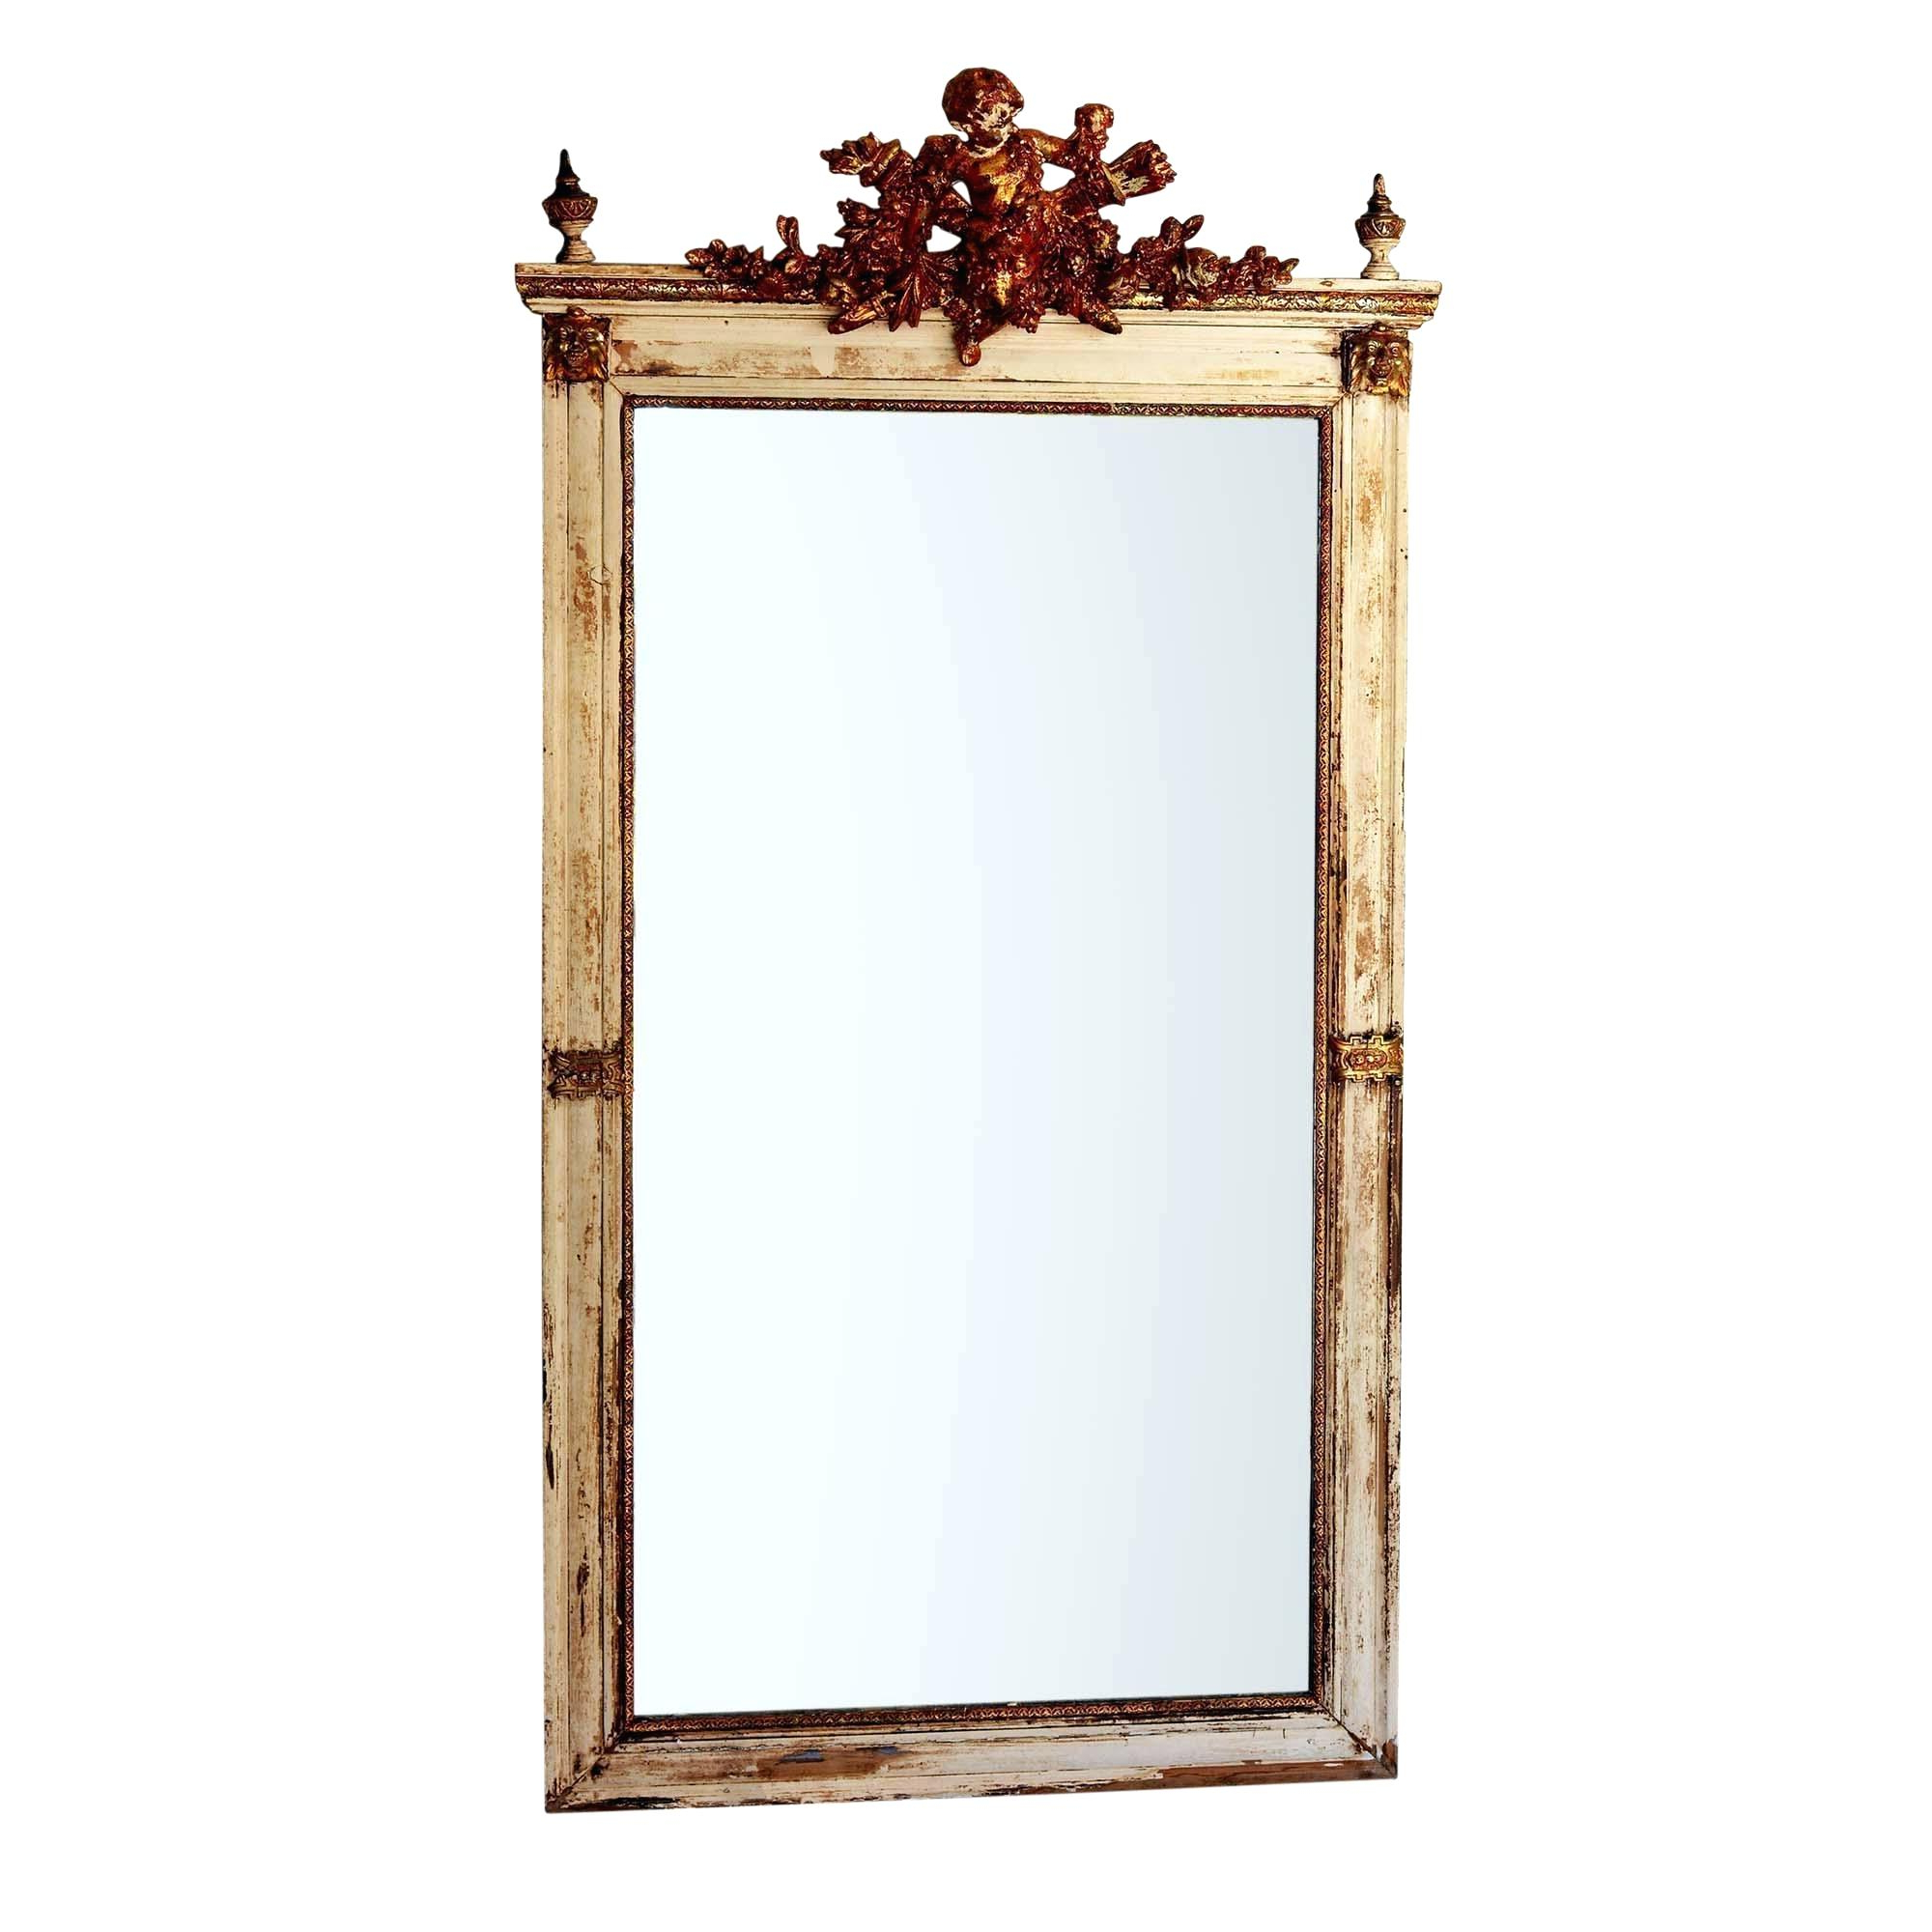 Large White Framed Wall Mirrors Pertaining To Favorite White Frame Wall Mirror Antique Large Cherub Detail Creamy (View 14 of 20)